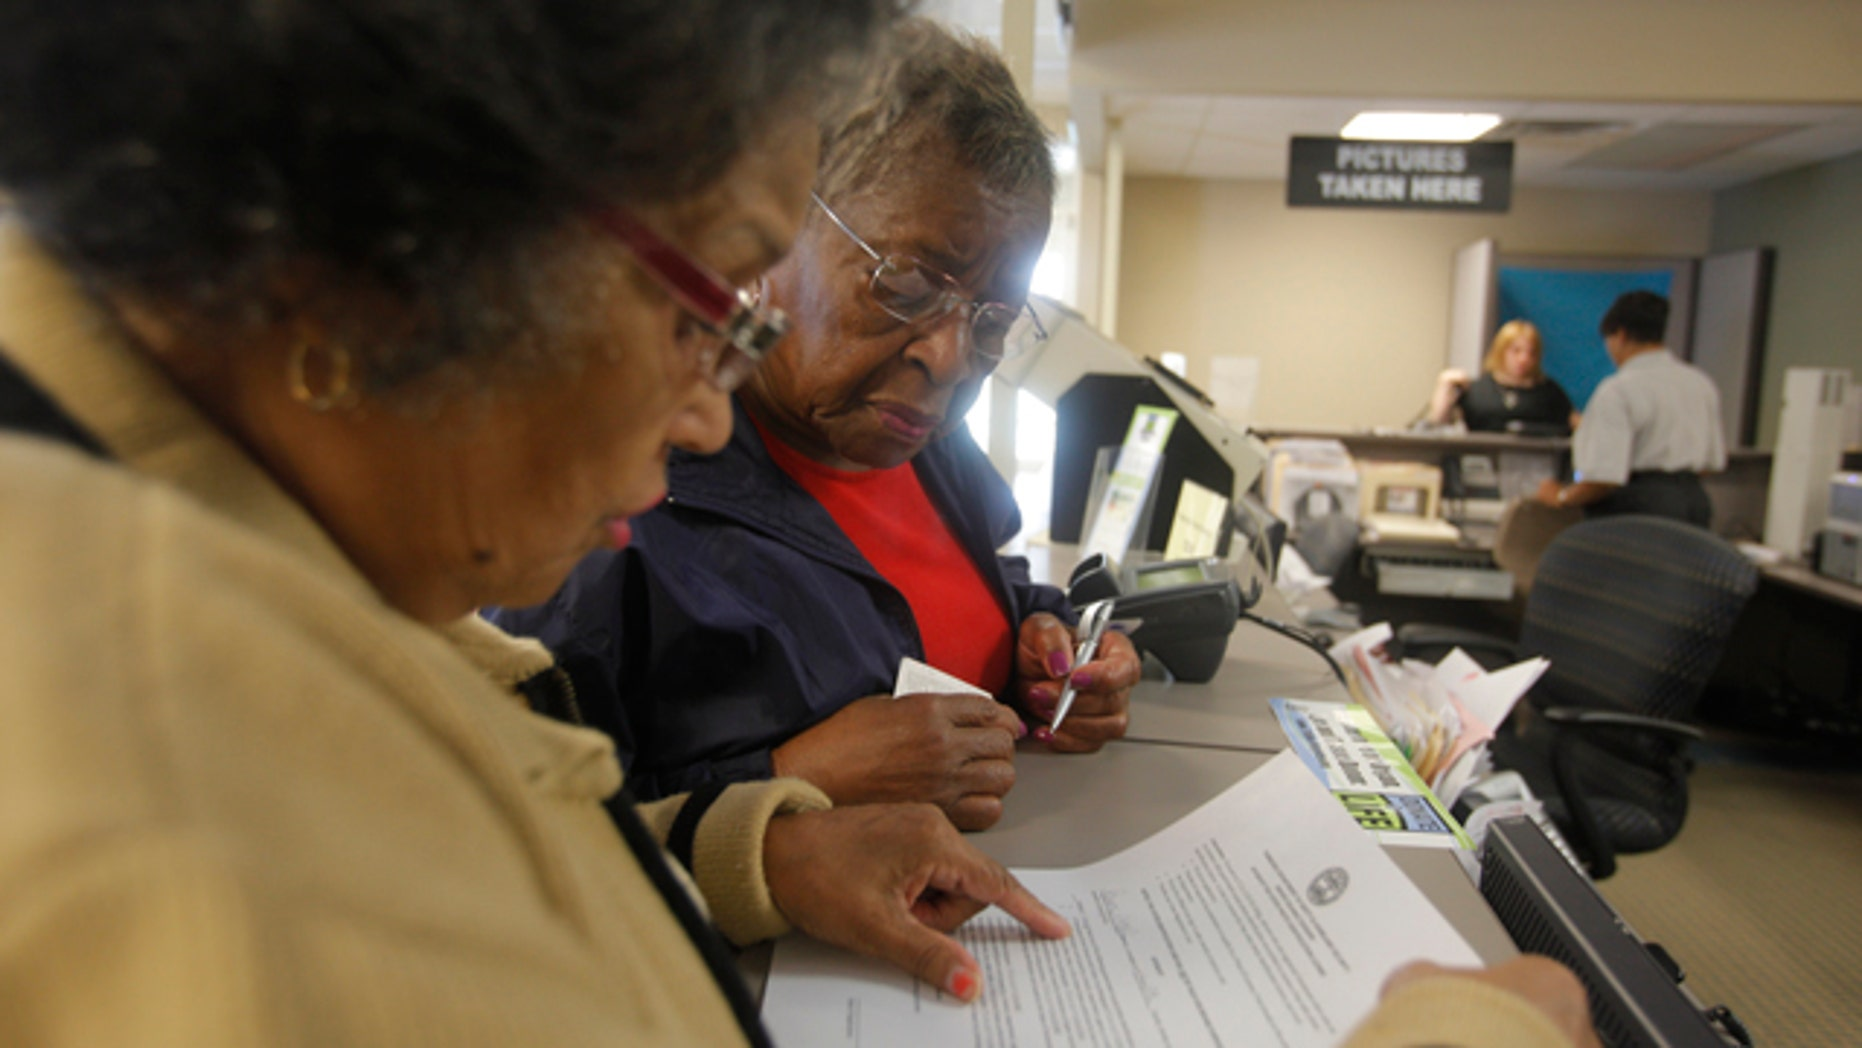 FILE: Sept. 19, 2011: Dorothy Melvin, center, gets help in Tennessee from Charline Kilpatrick in getting a license with a photograph, which will be valid at polling stations.